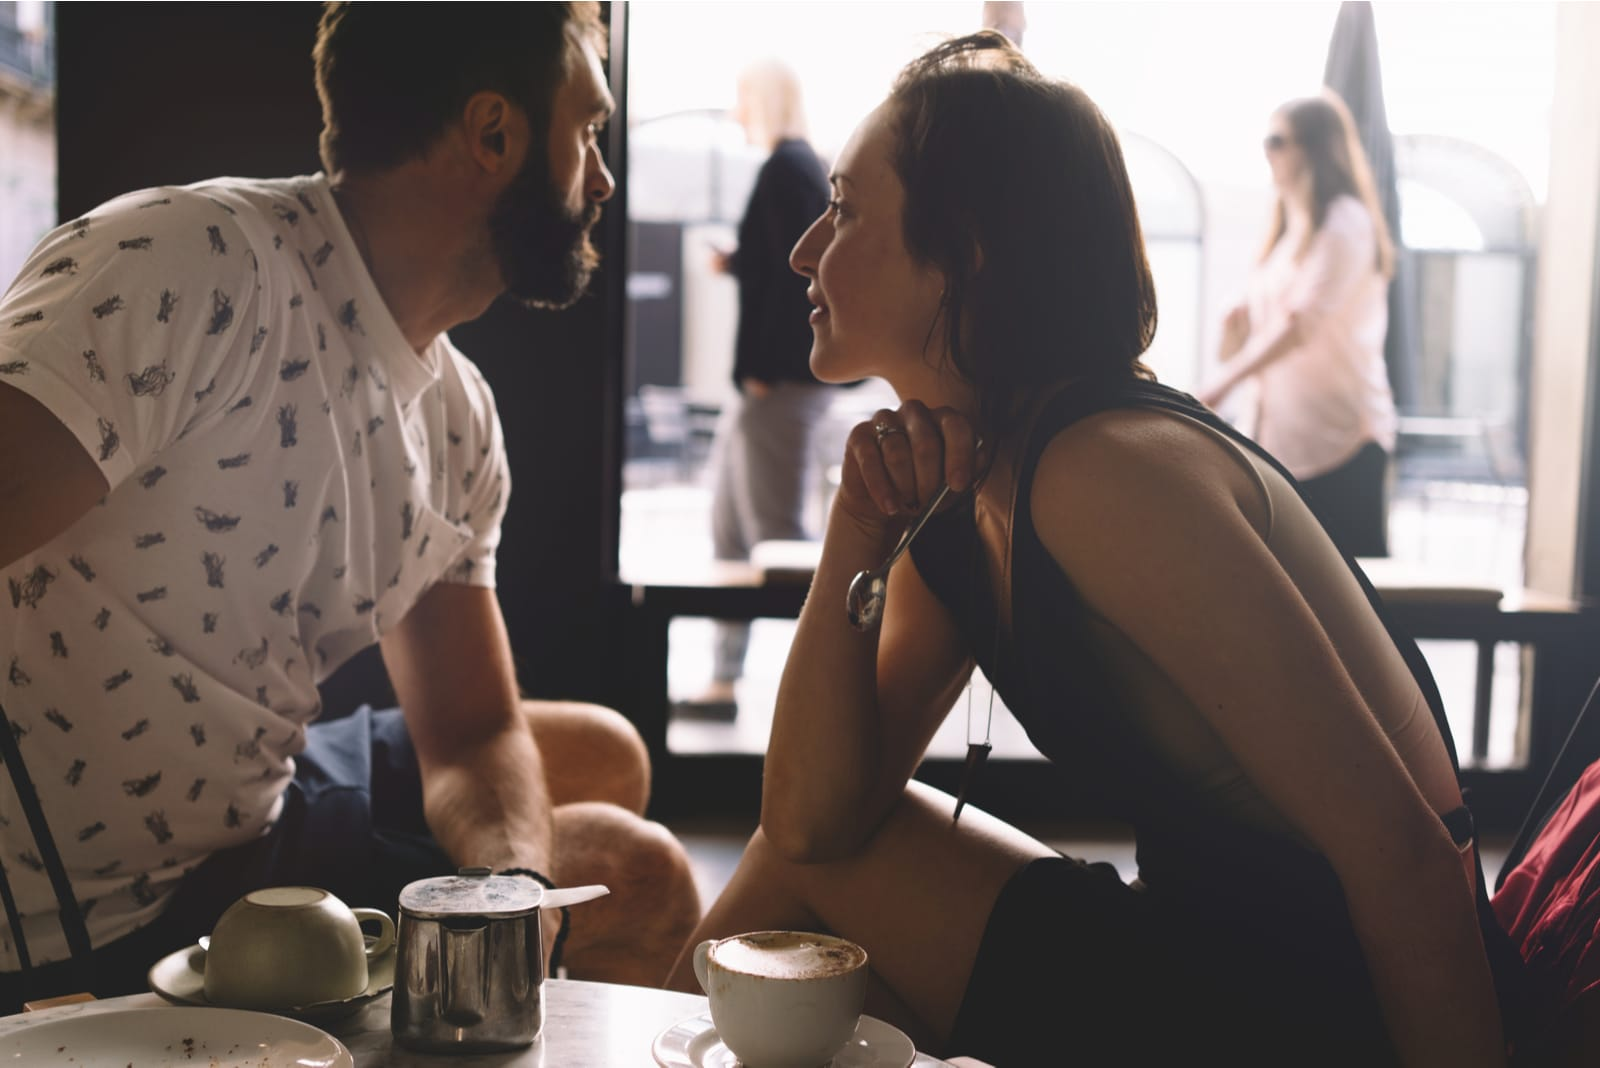 a man and a woman are sitting and drinking coffee in a cafe